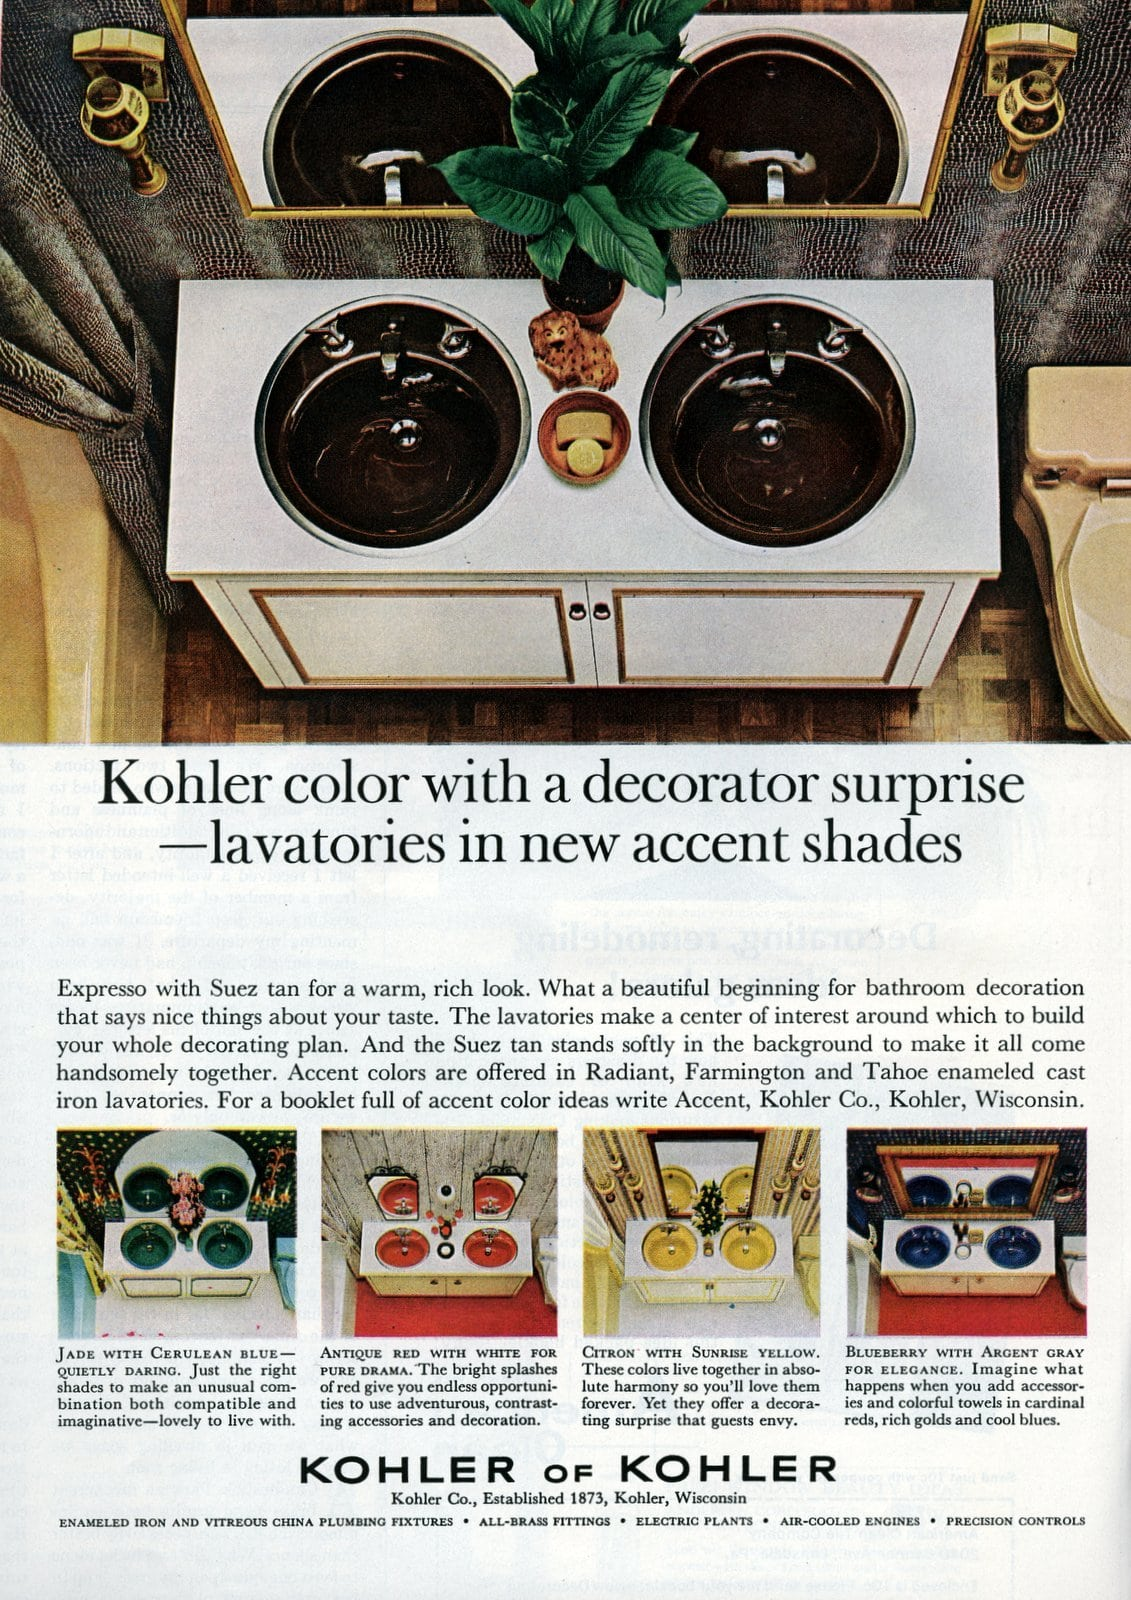 Kohler lavatories - sinks in decorator shades (1965)